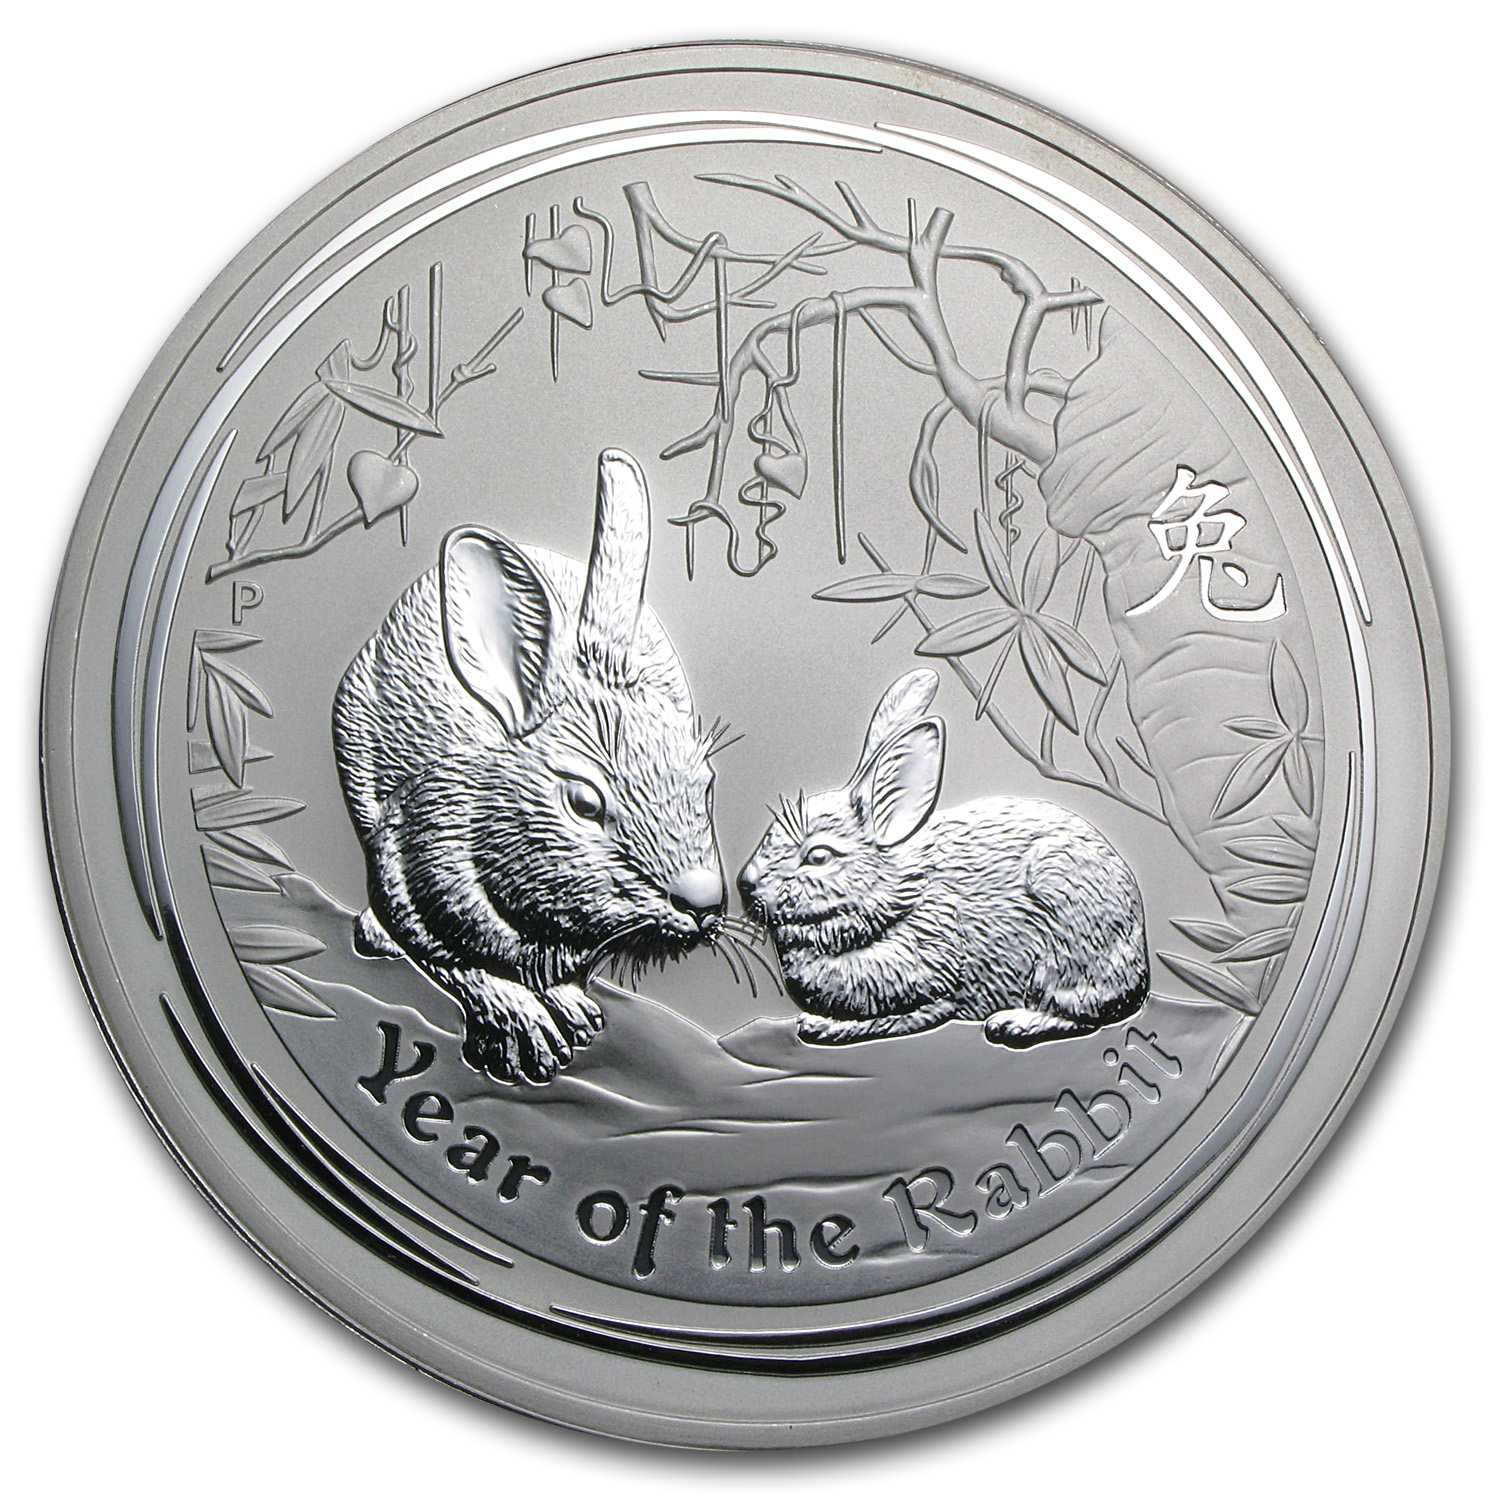 2011 1 Kilo Silver Australian Year of the Rabbit BU